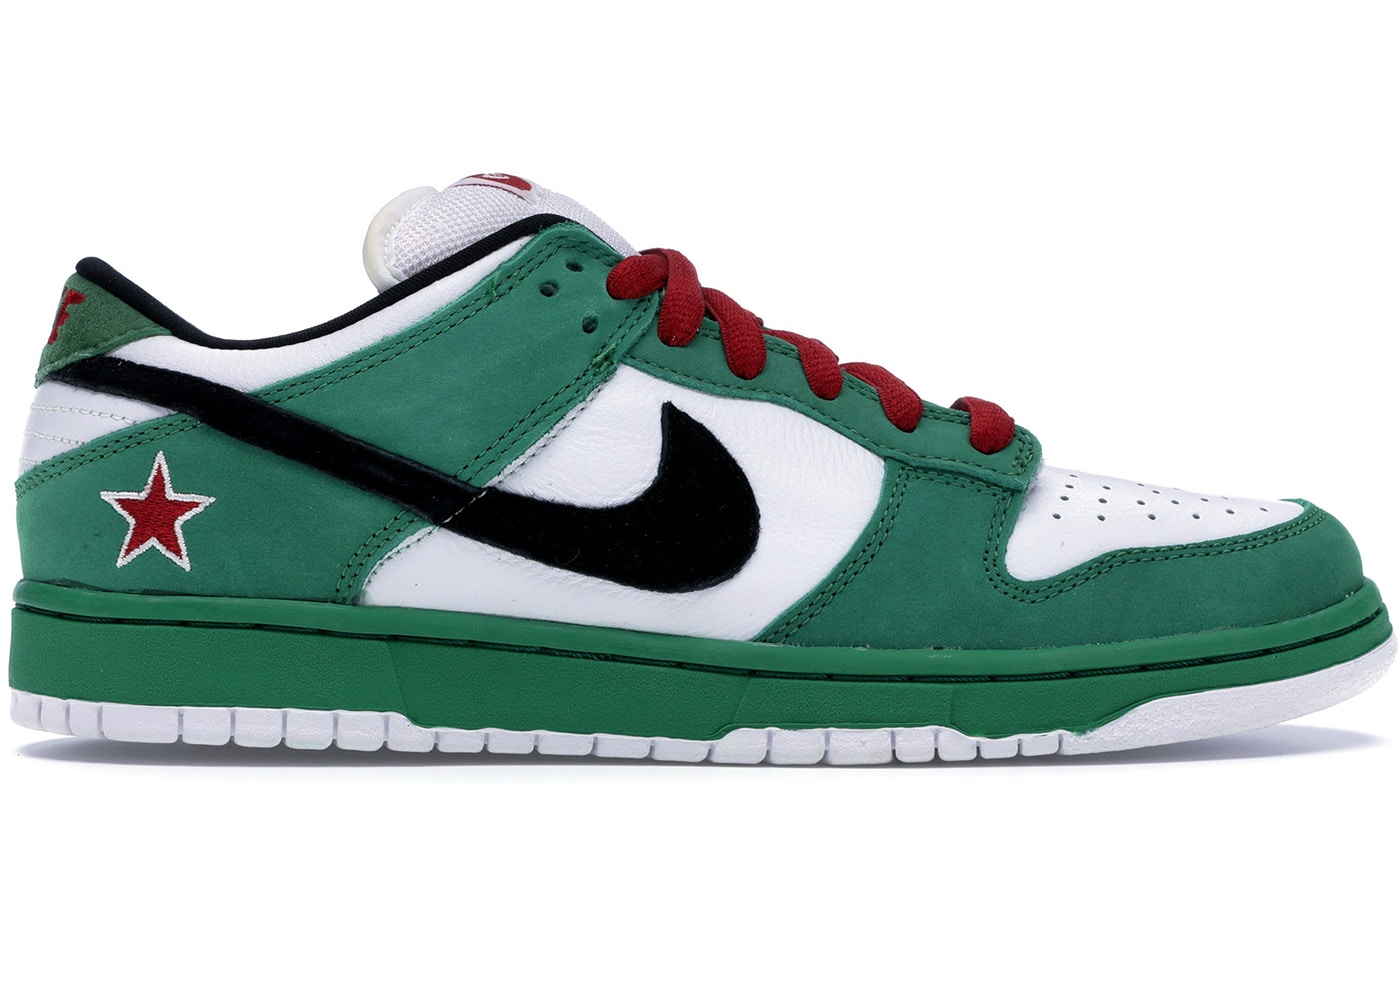 a8153a7ace4 Nike Dunk SB Low Heineken - 304292-302